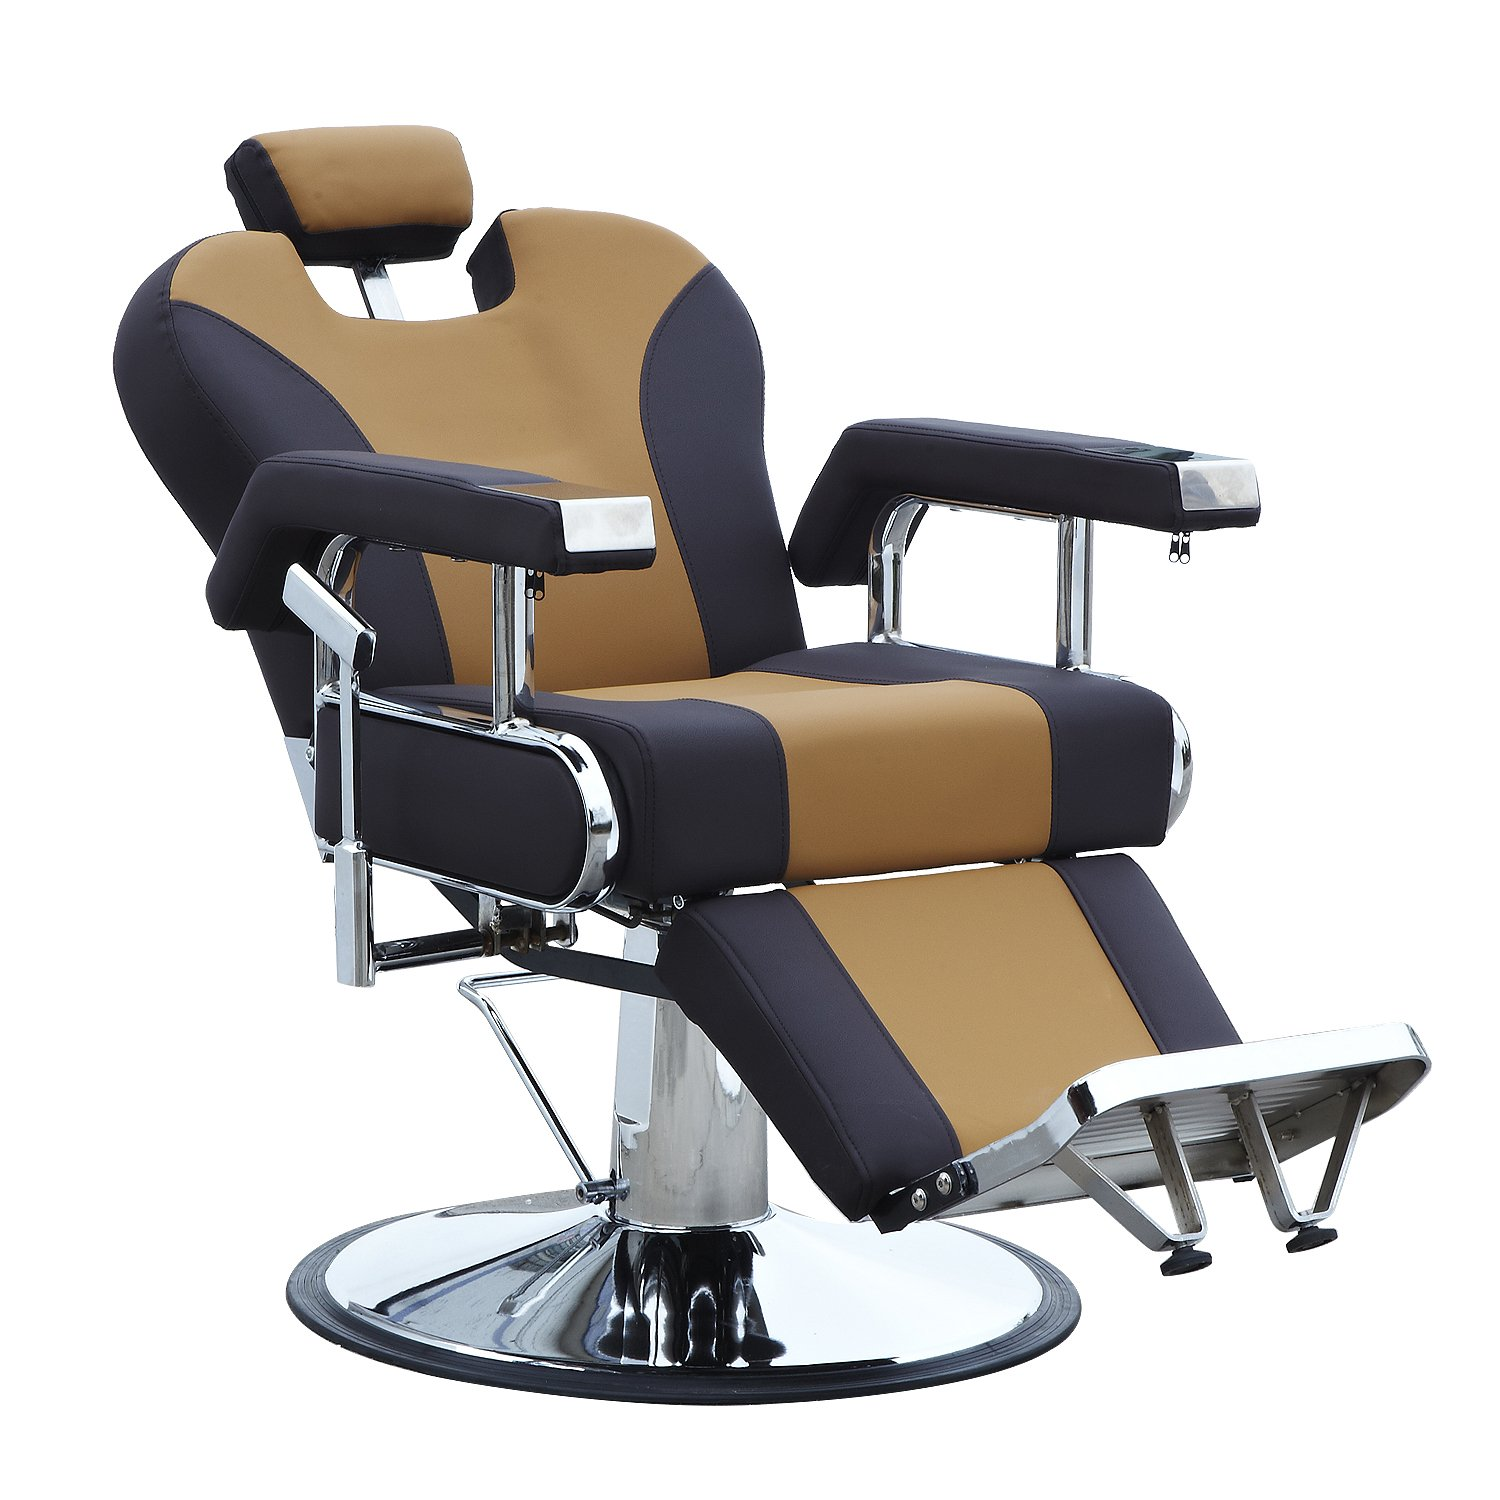 Amazon Walcut Hydraulic Recline Barber Chair Salon Shampoo